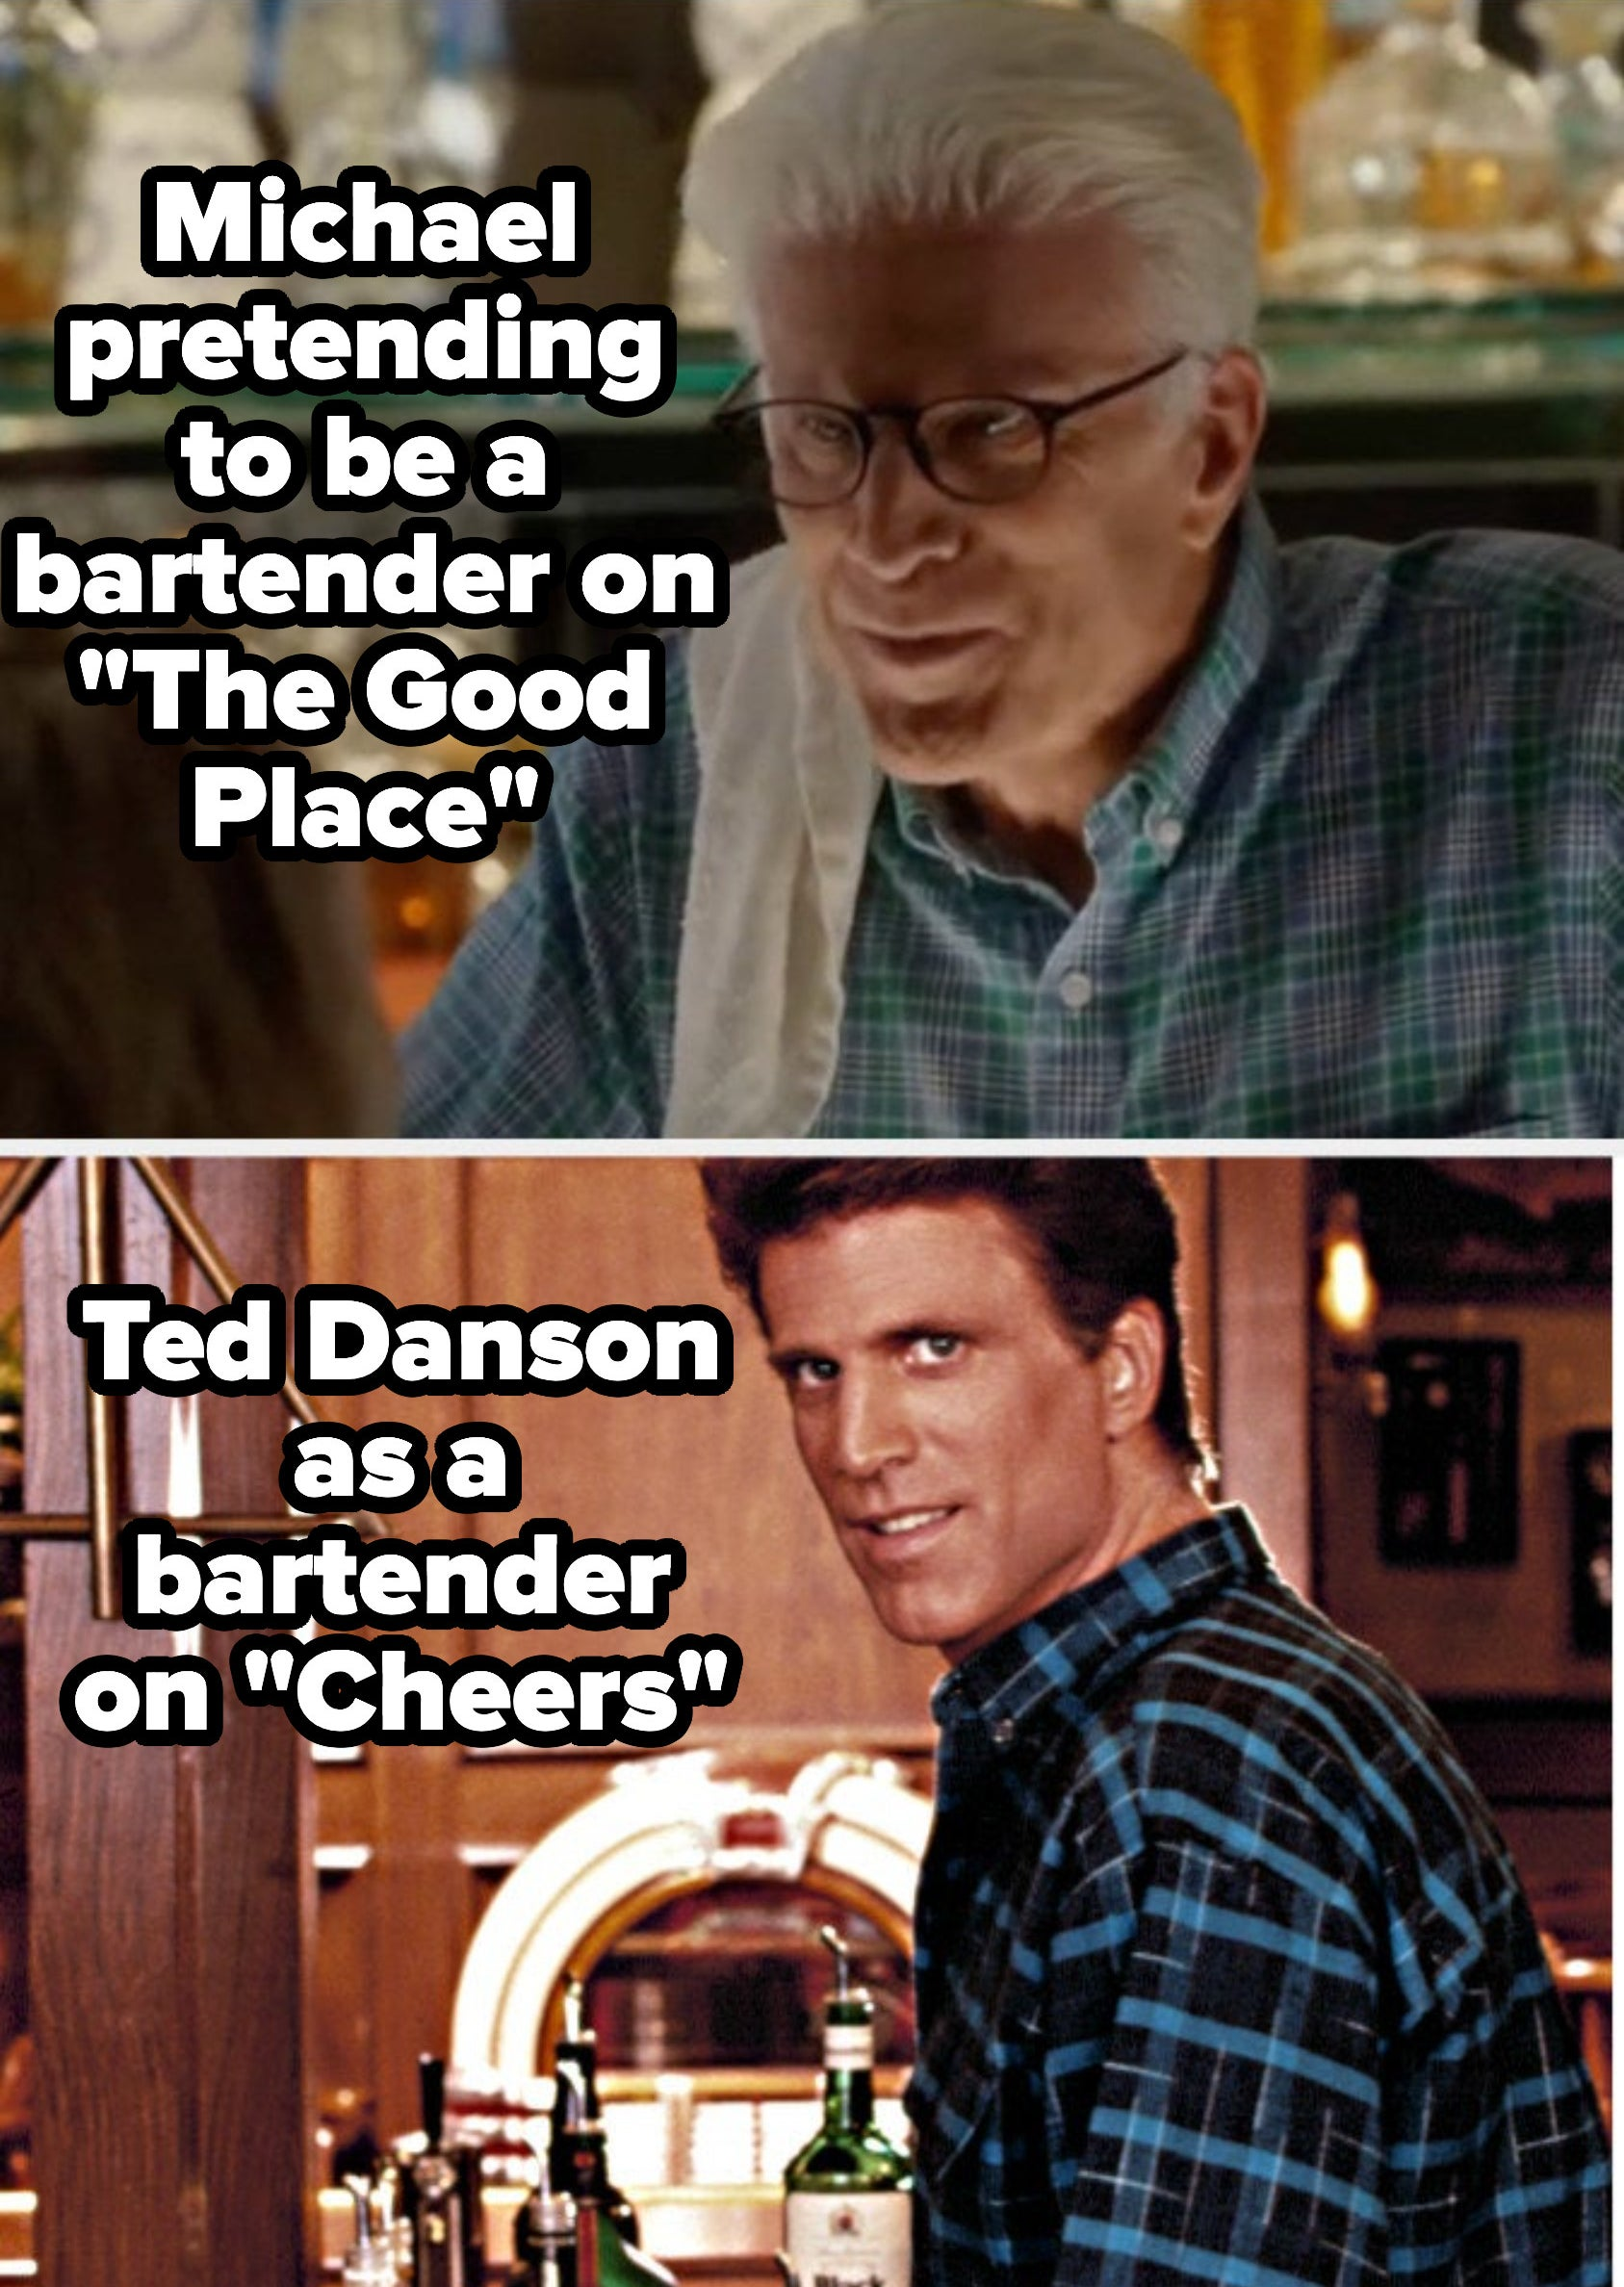 Michael as a bartender on The Good Place, and Ted Danson as a bartender on Cheers